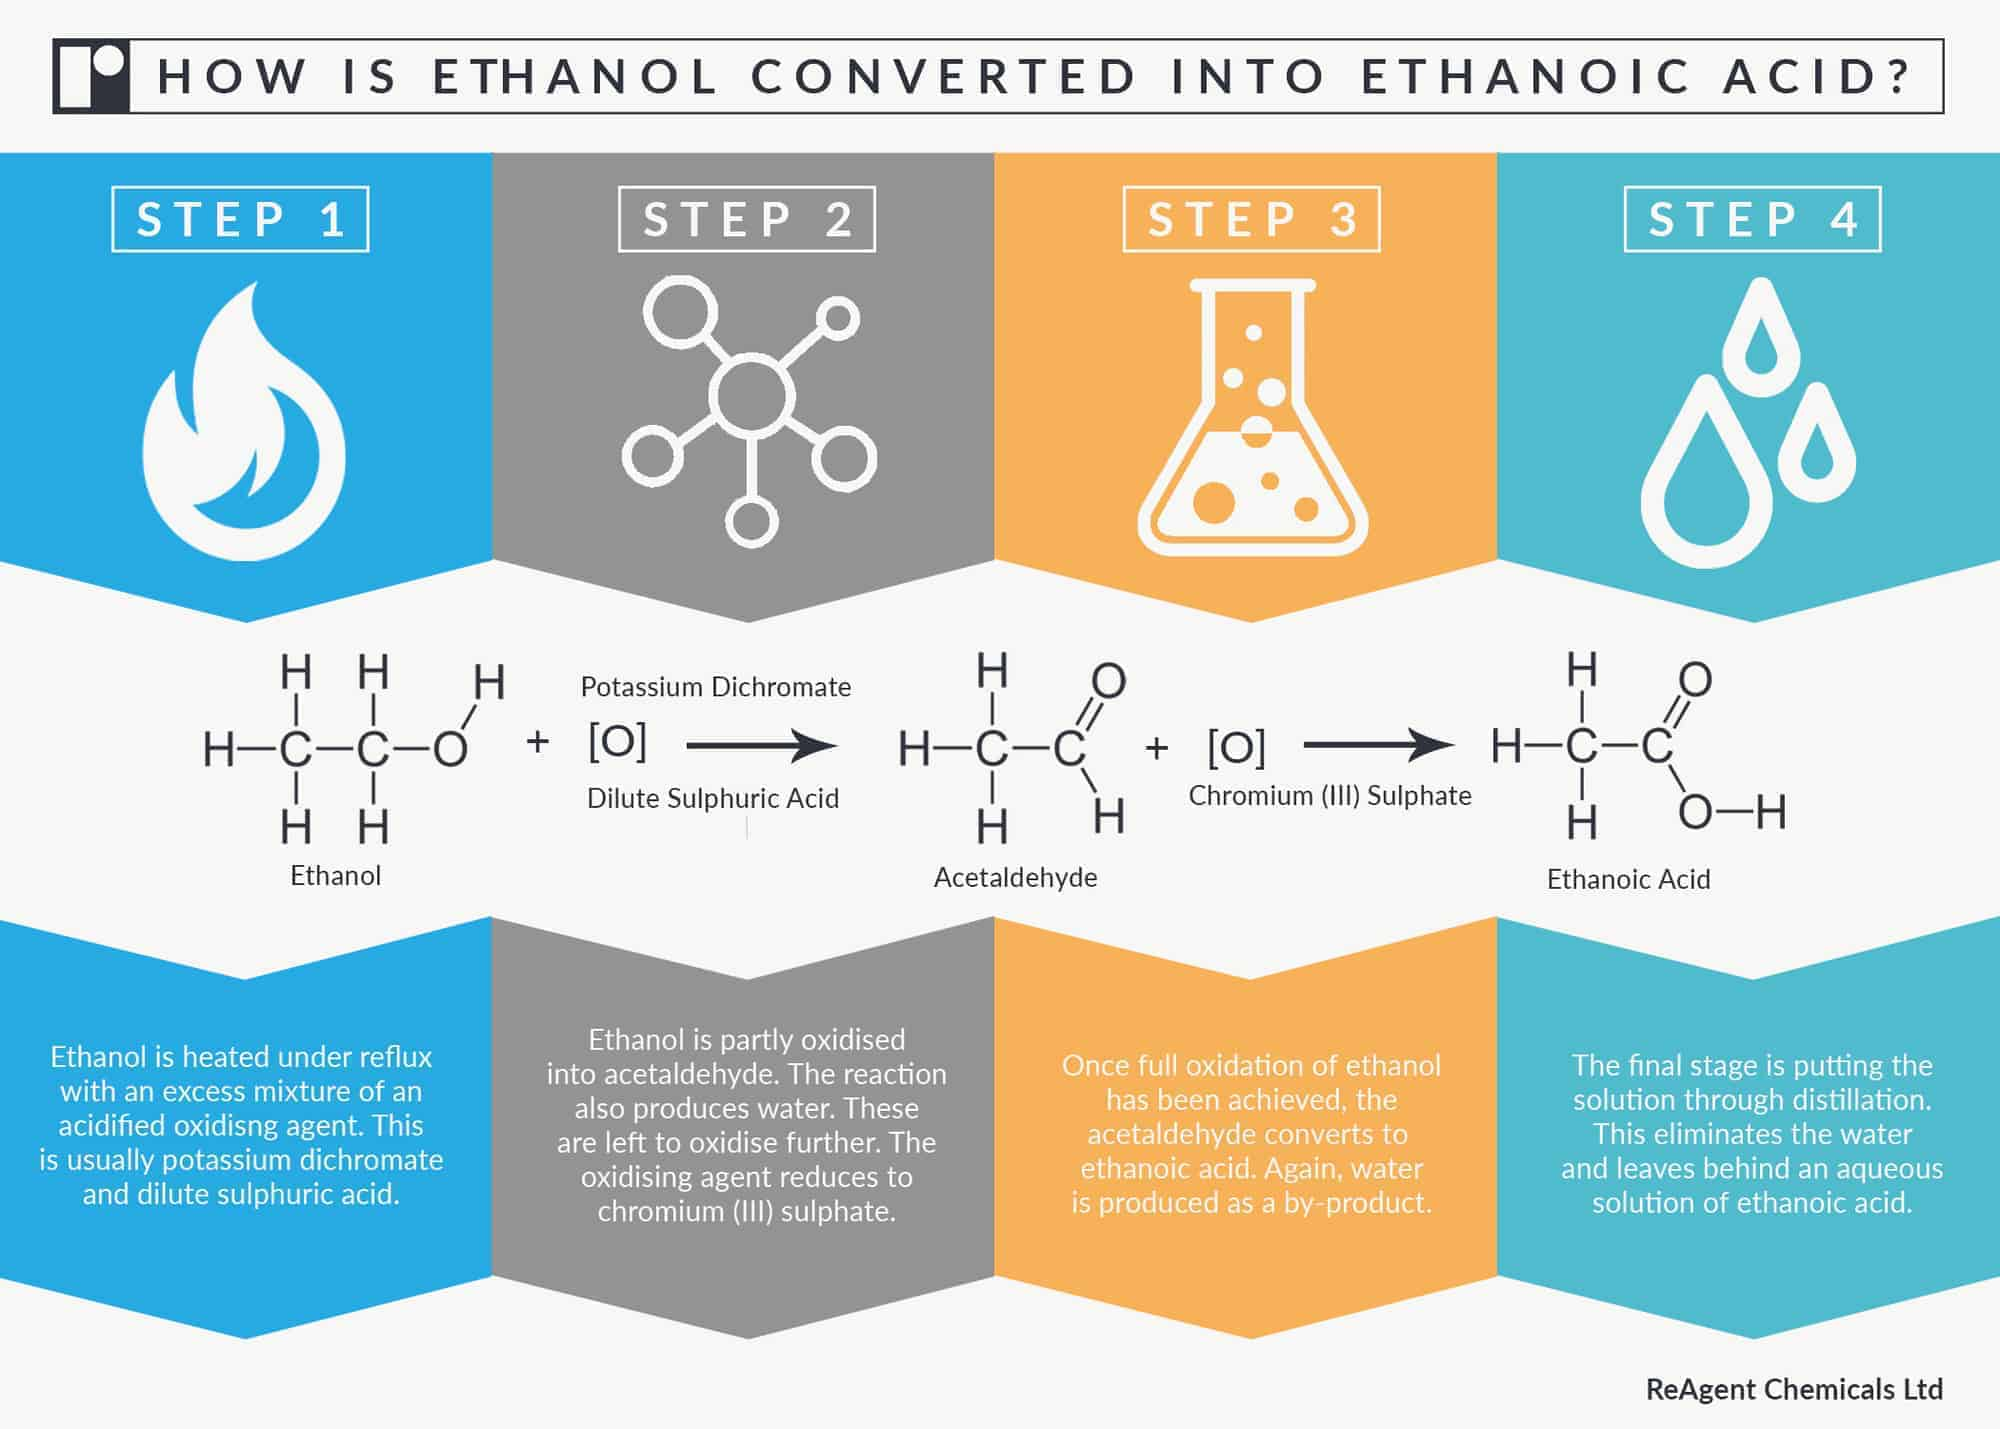 Infographic showing process of how ethanol is converted into ethanoic acid using oxidation